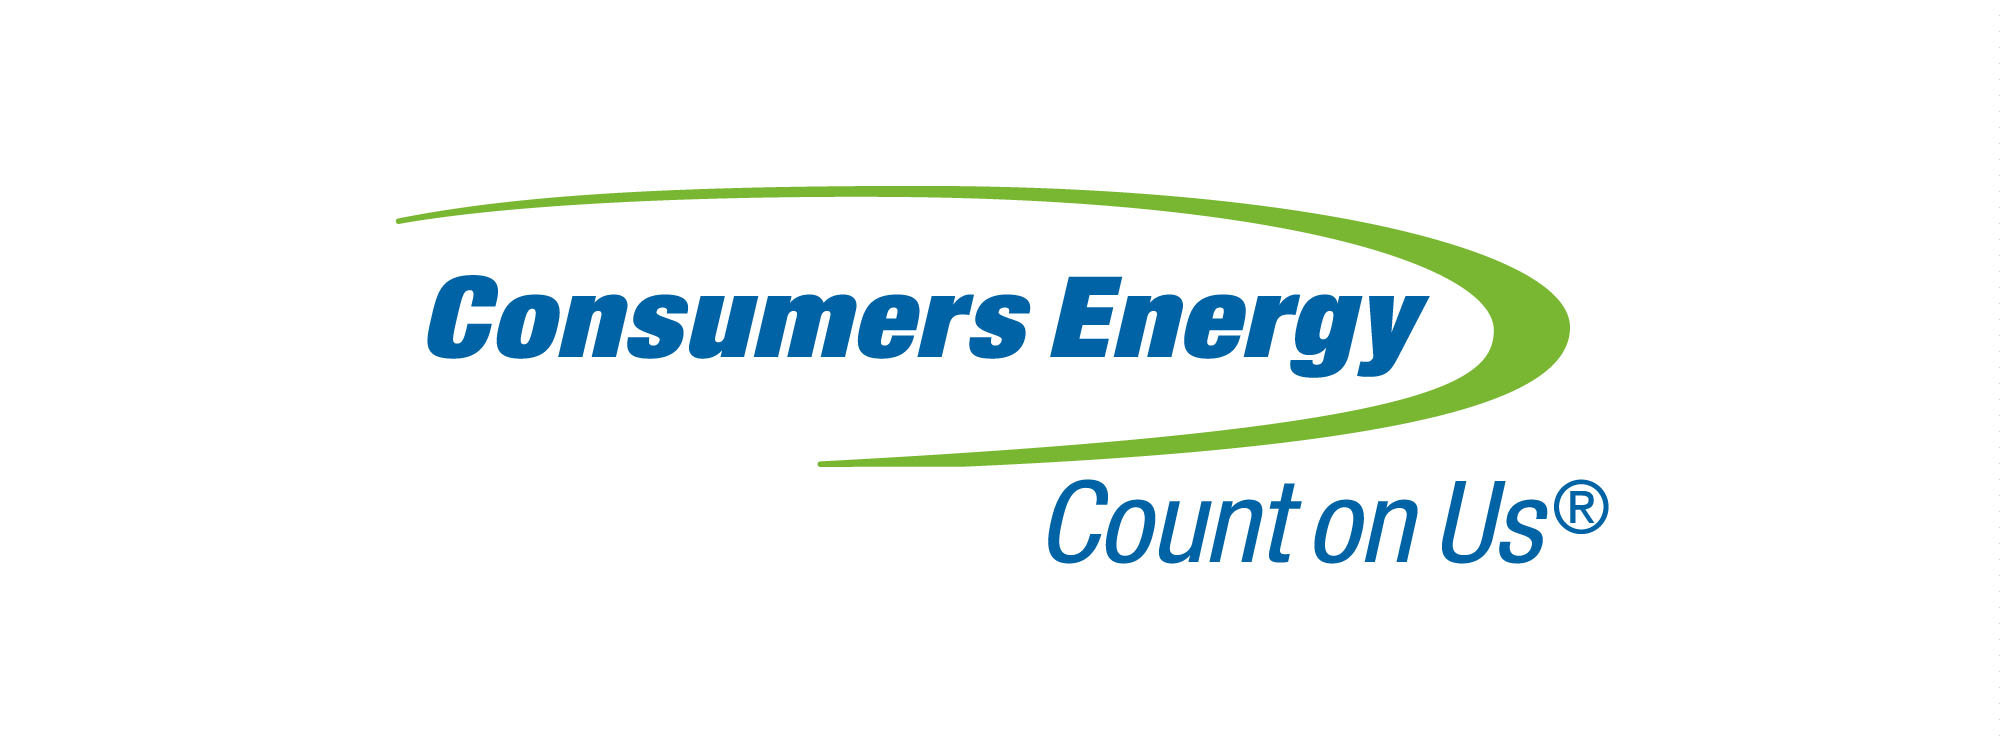 Consumers Energy is a public utility that provides natural gas and electricity to 66 million of Michigans 10 million residents It serves customers in all 68 of the